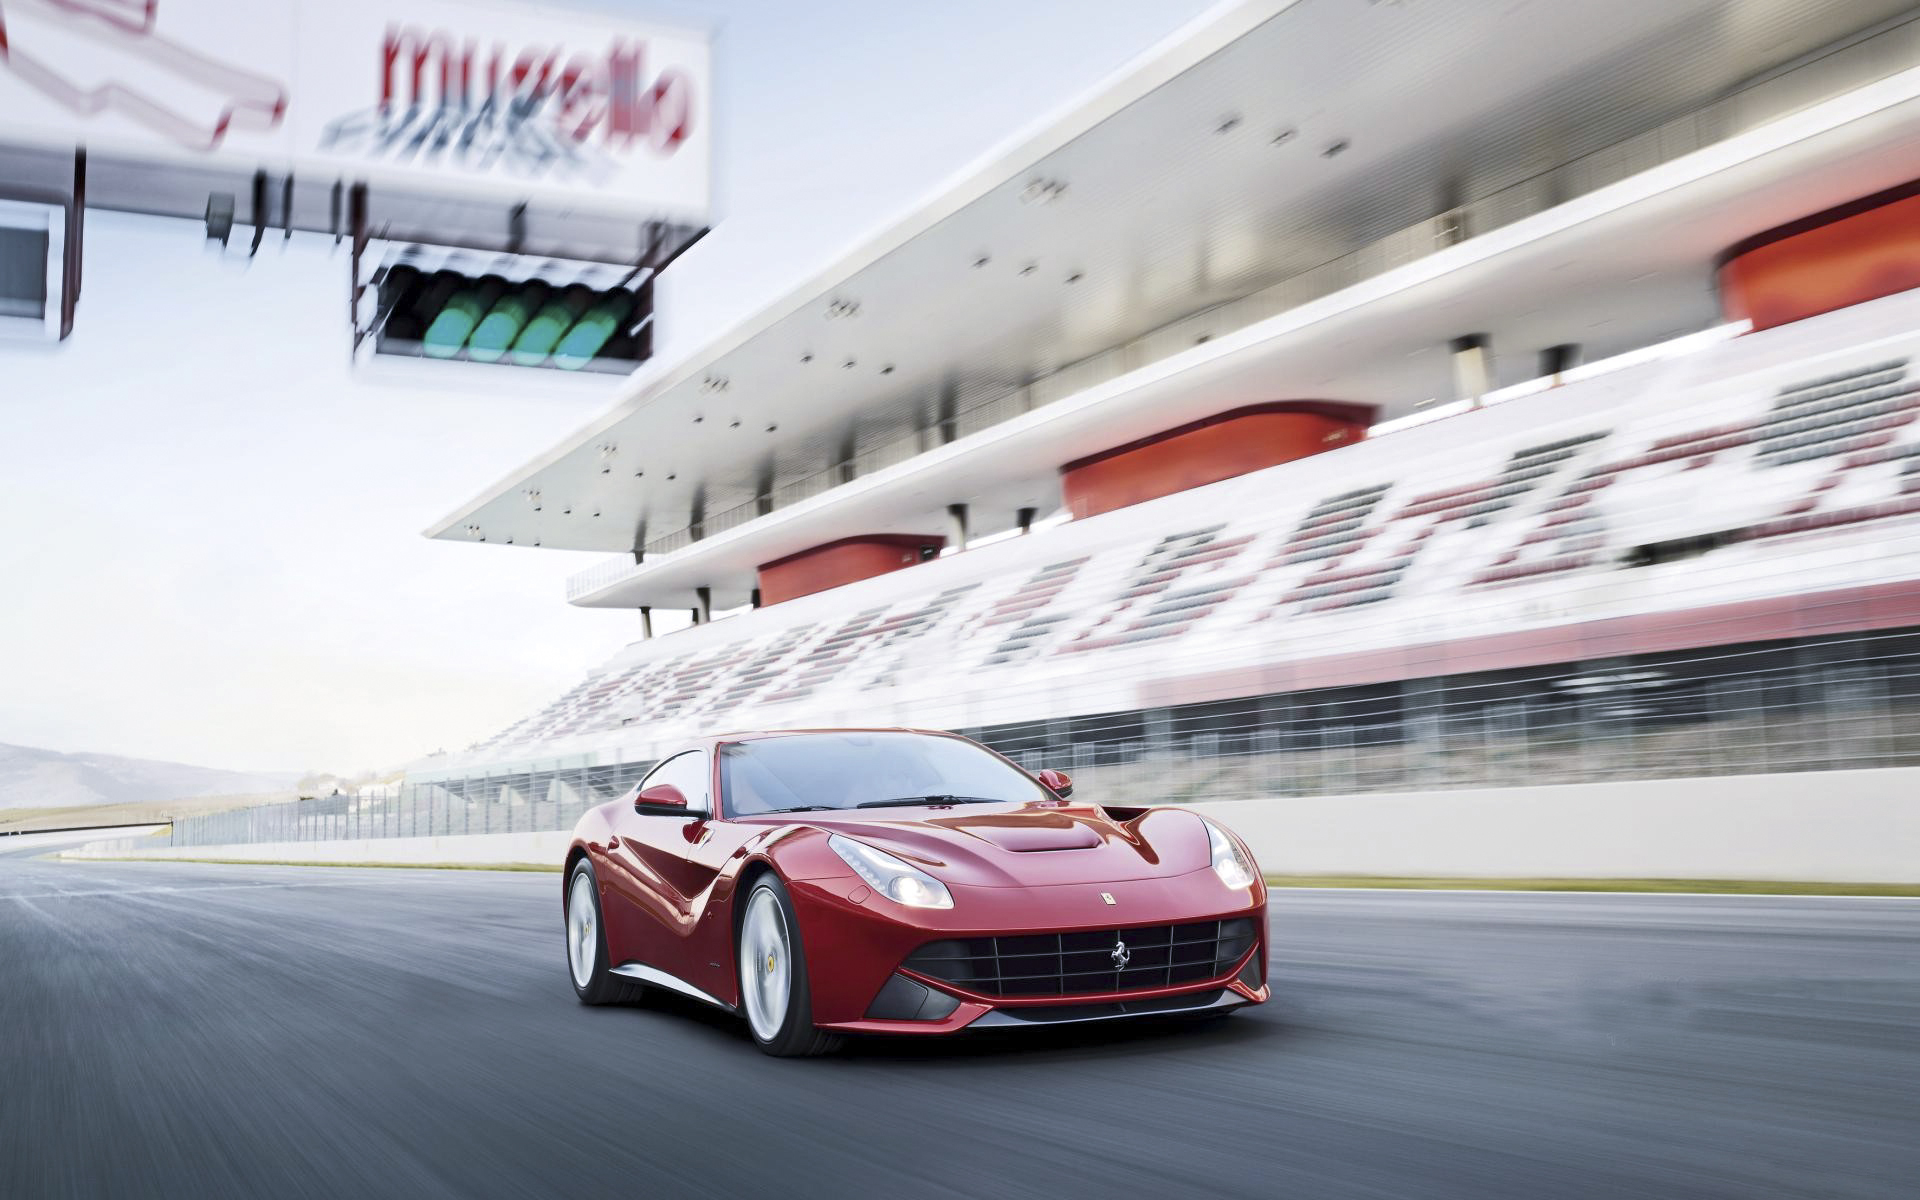 33924 download wallpaper Transport, Auto, Ferrari screensavers and pictures for free